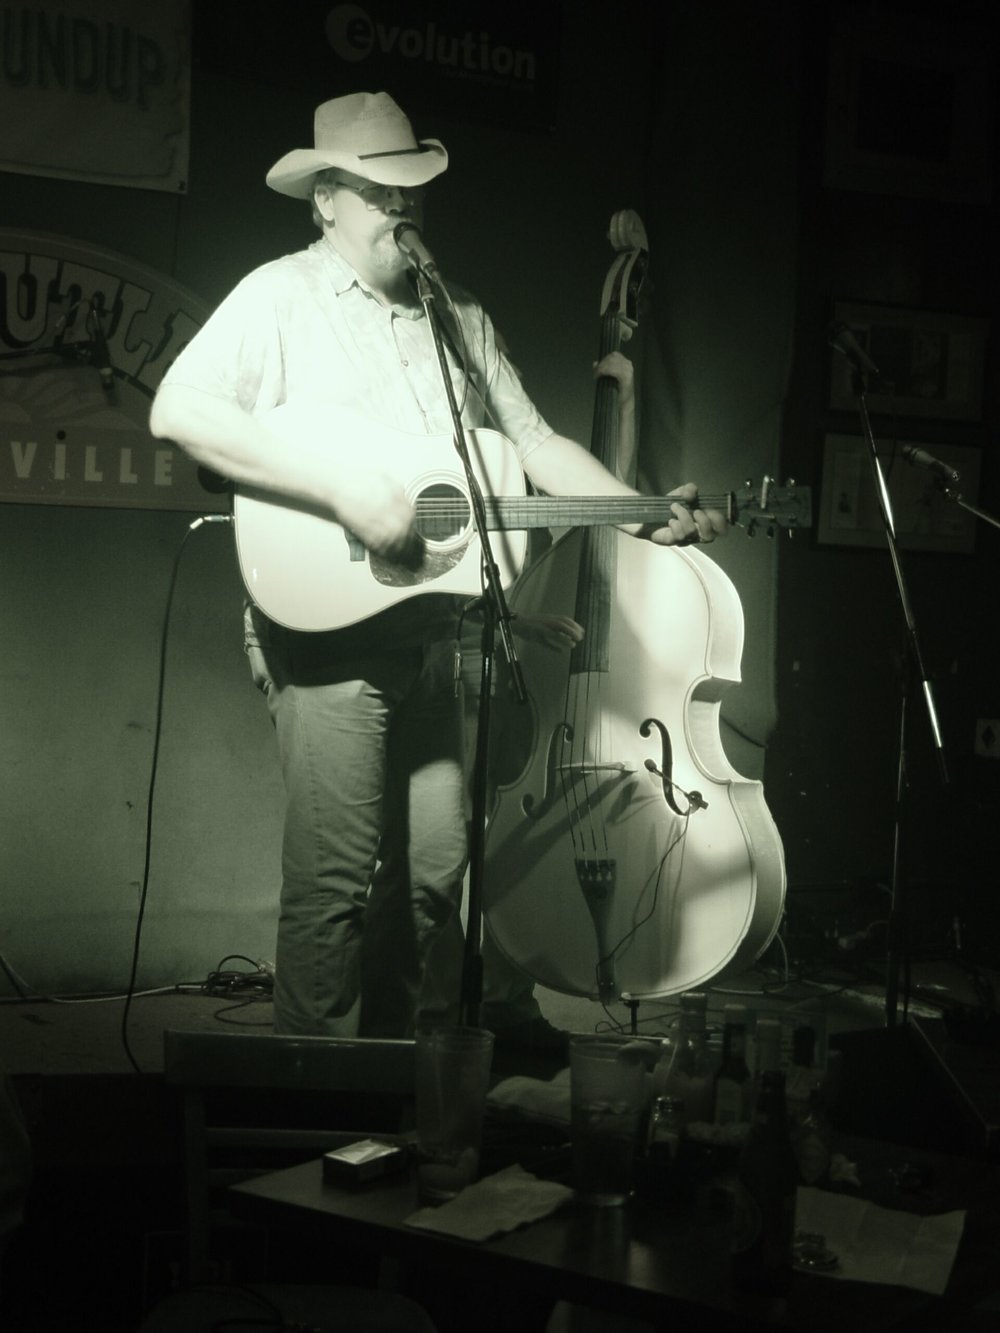 at The Sutler Nashville, TN 2003 or so